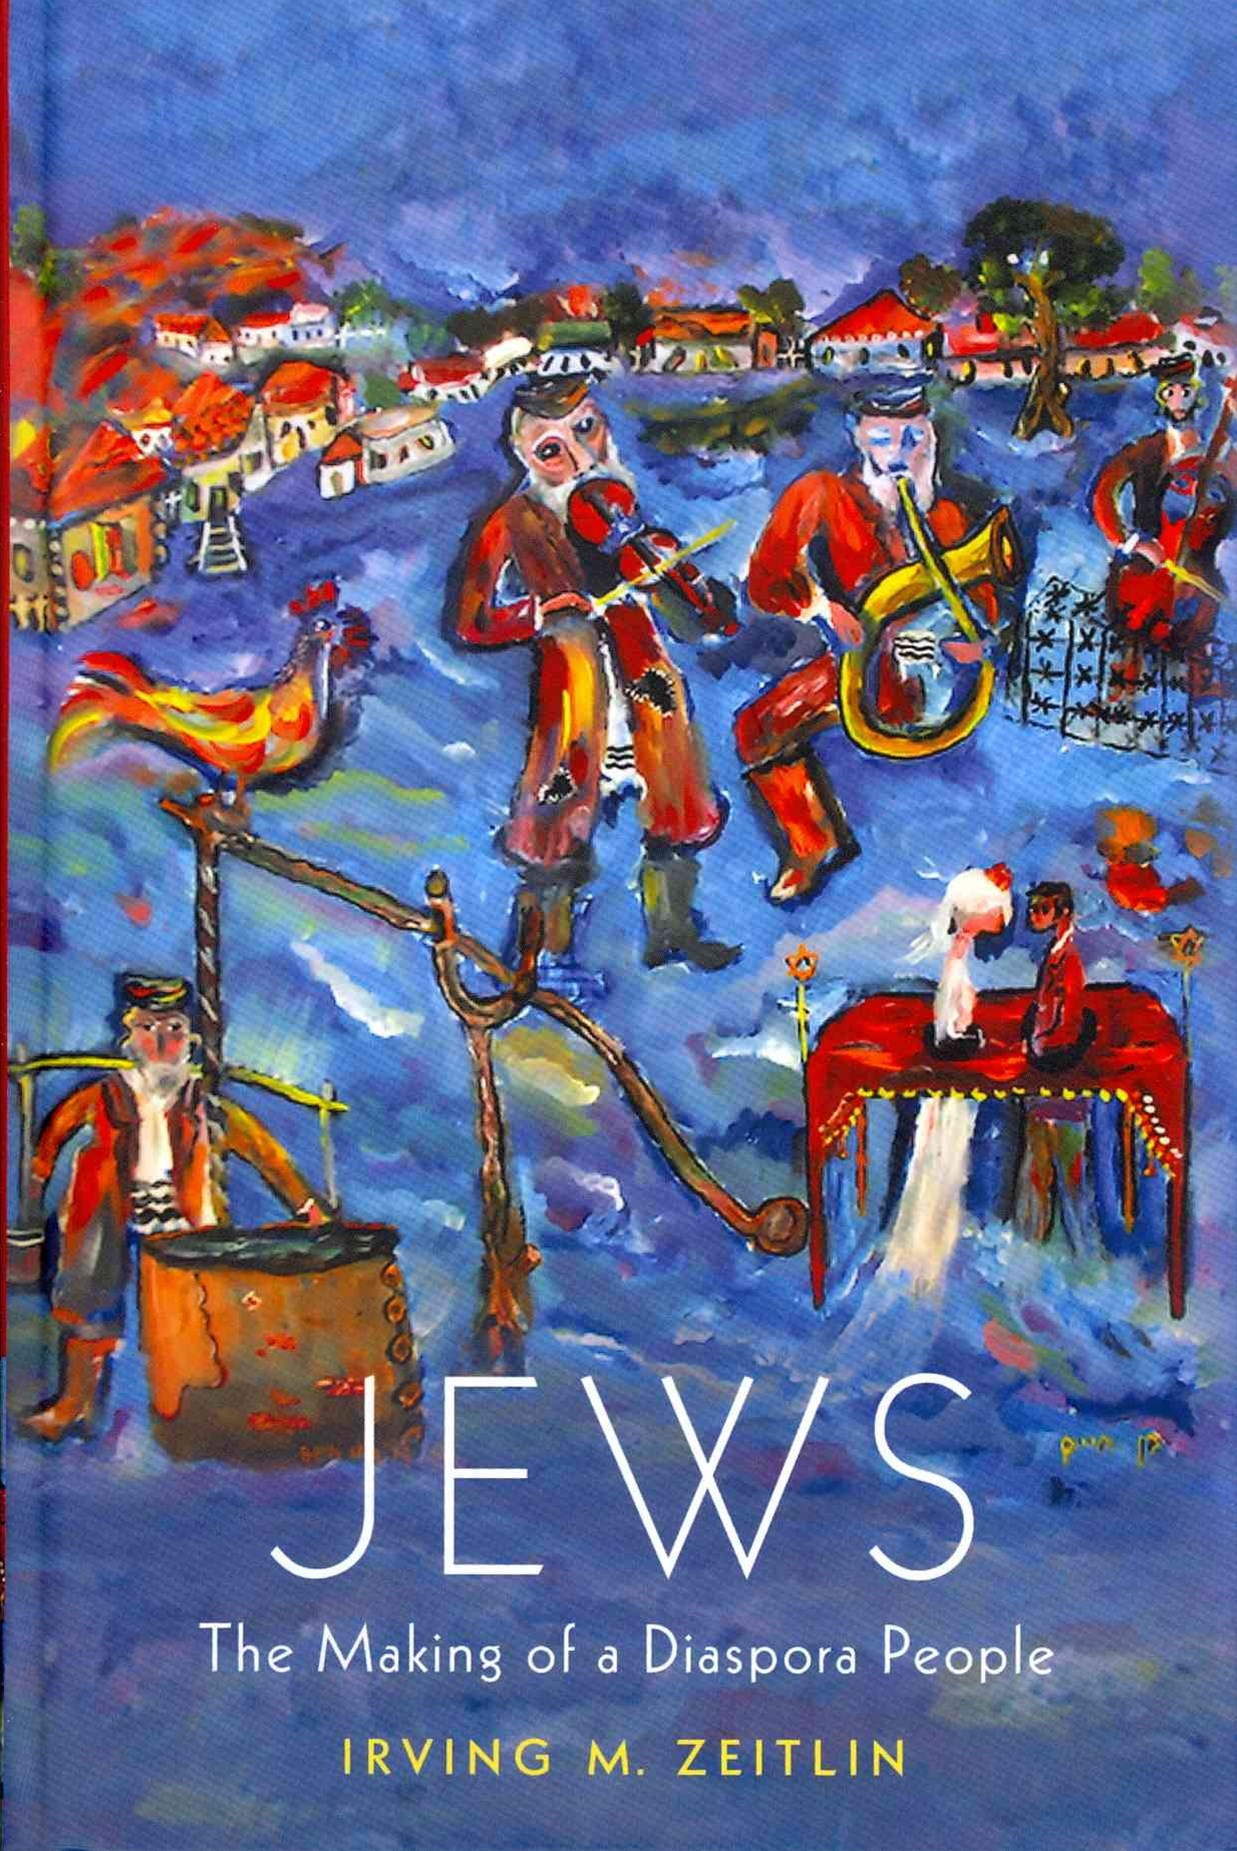 Jews - the Making of a Diaspora People